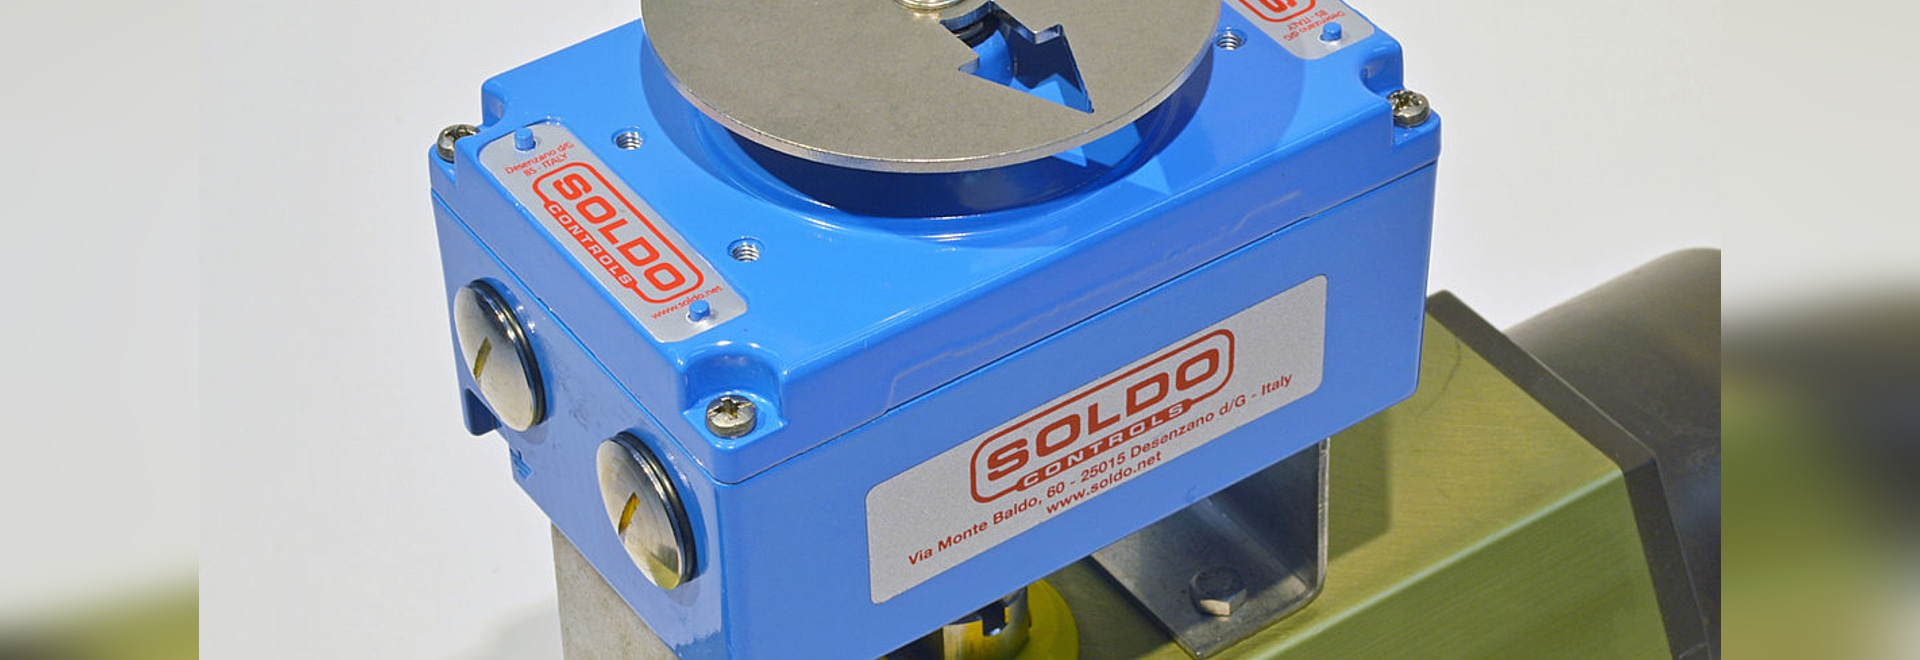 New Soldo limit switchbox for high temperature applications